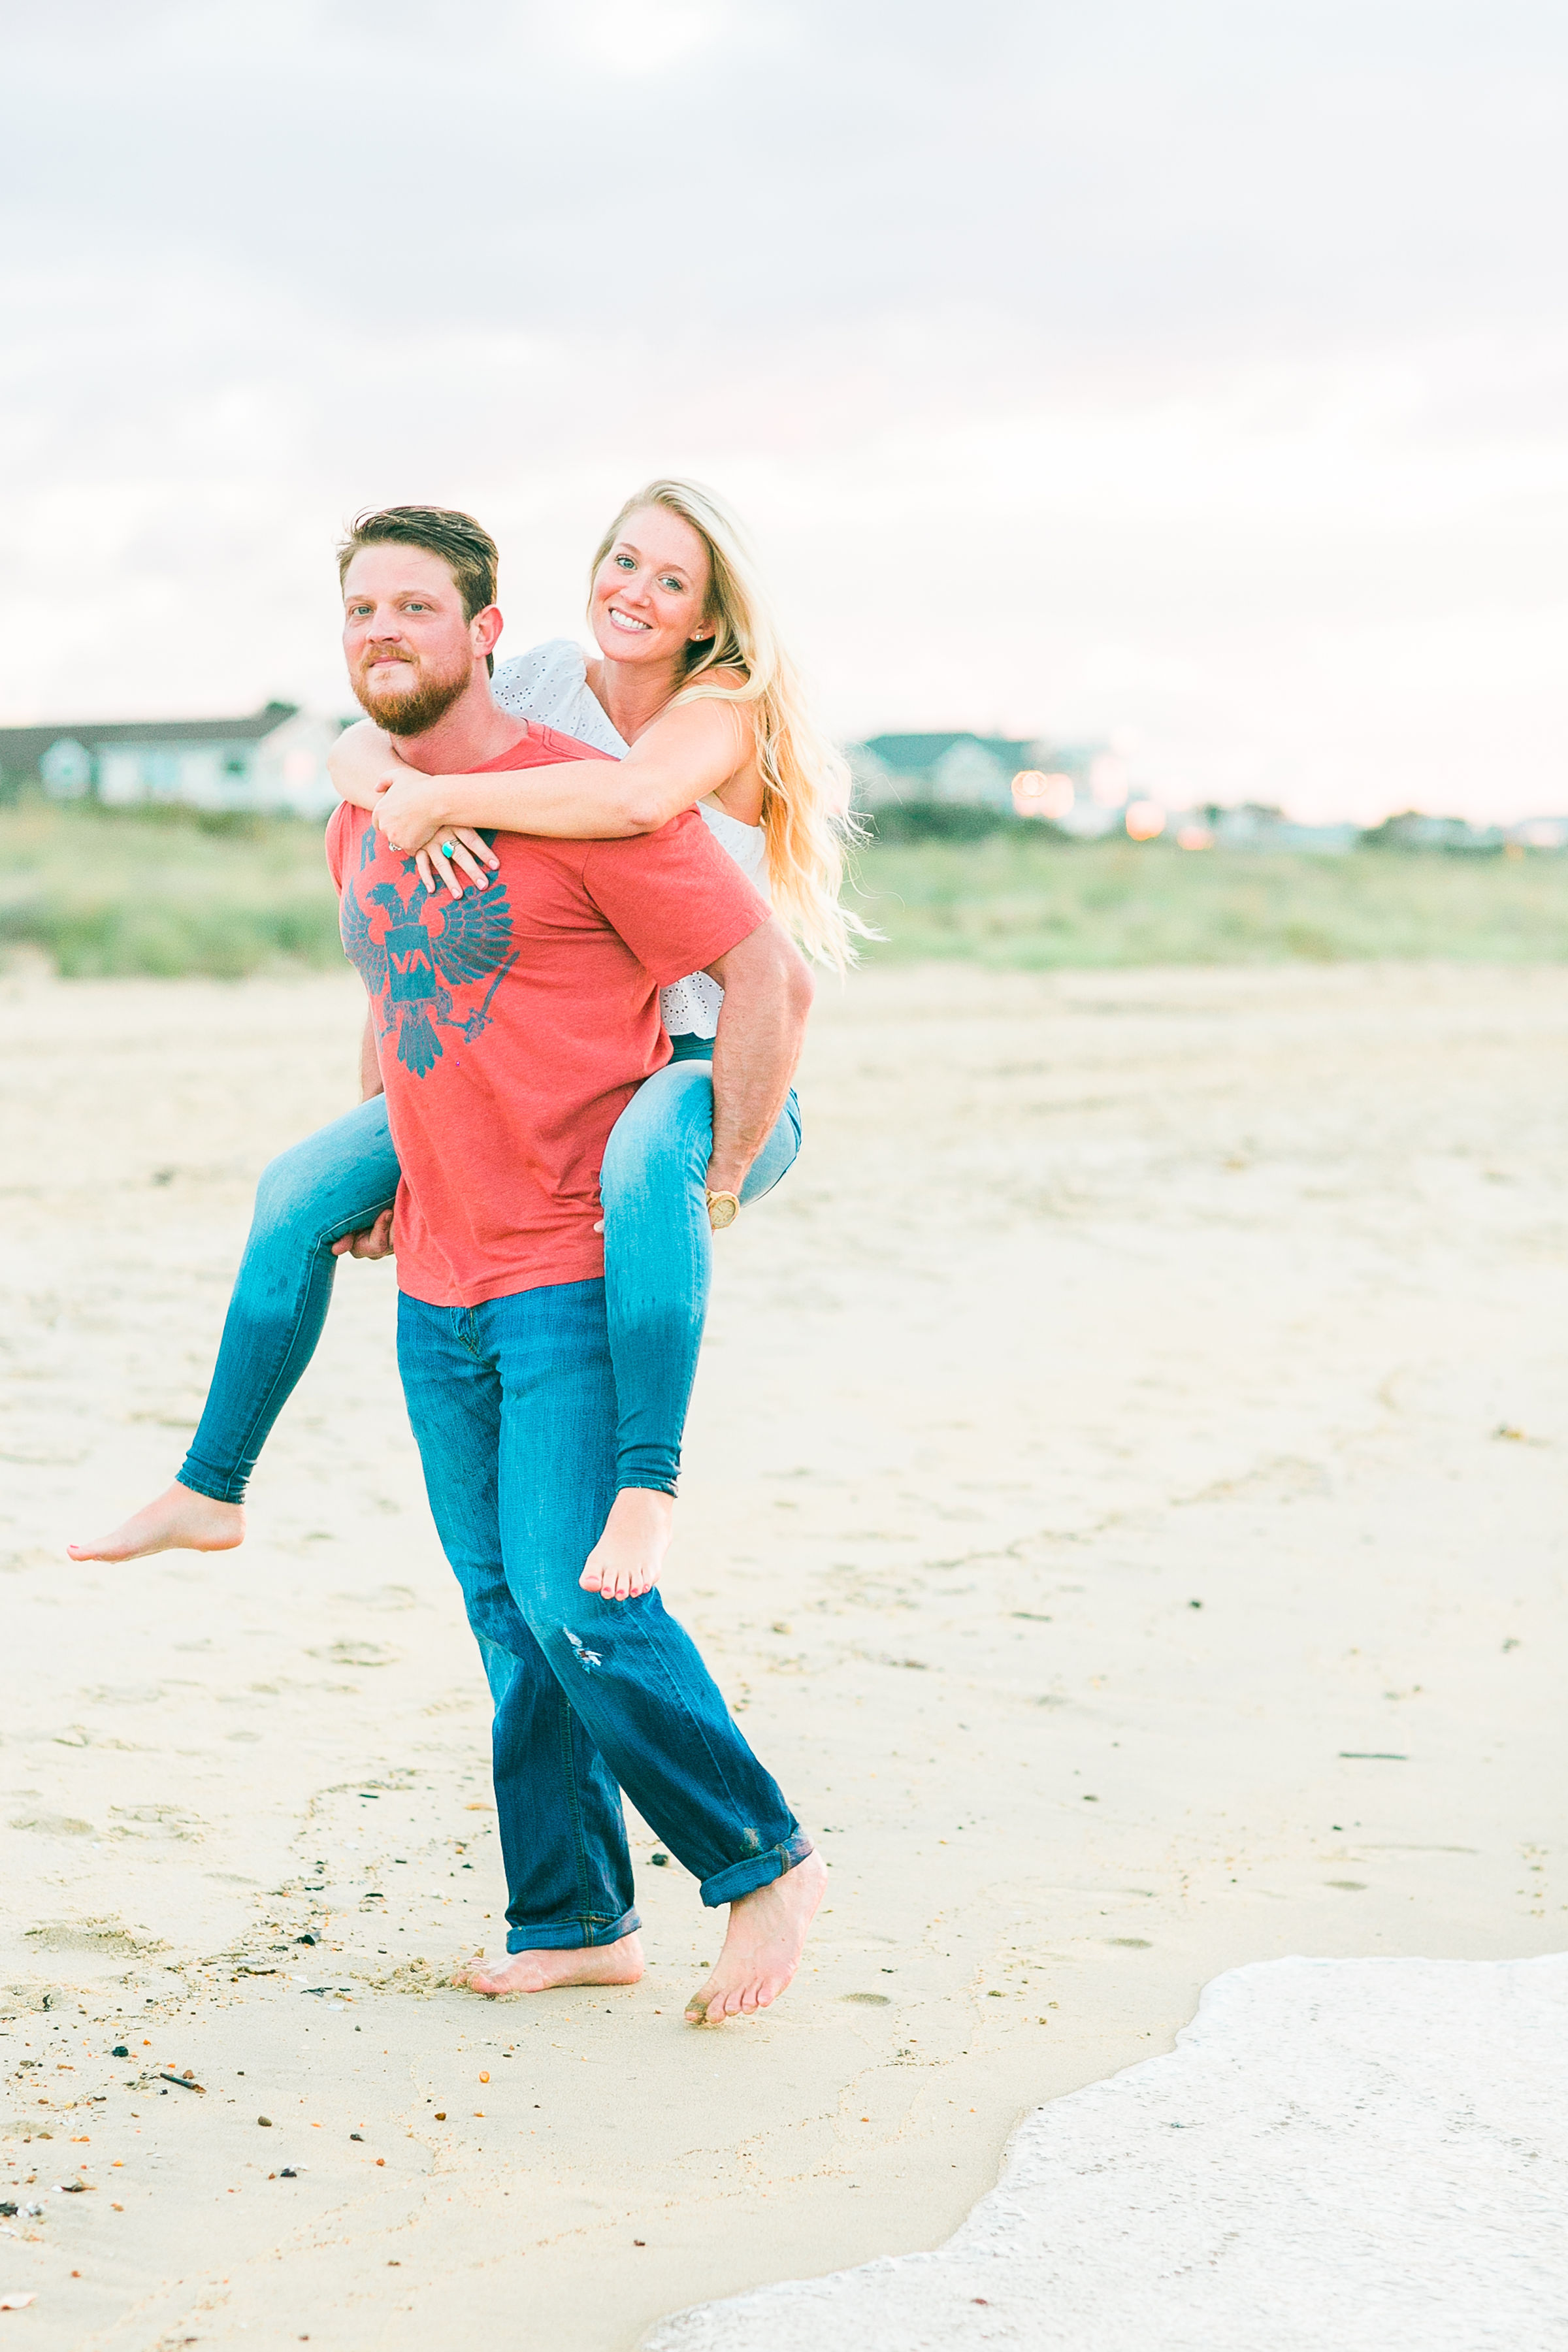 Chelsea&Jordan_Engaged-211.jpg